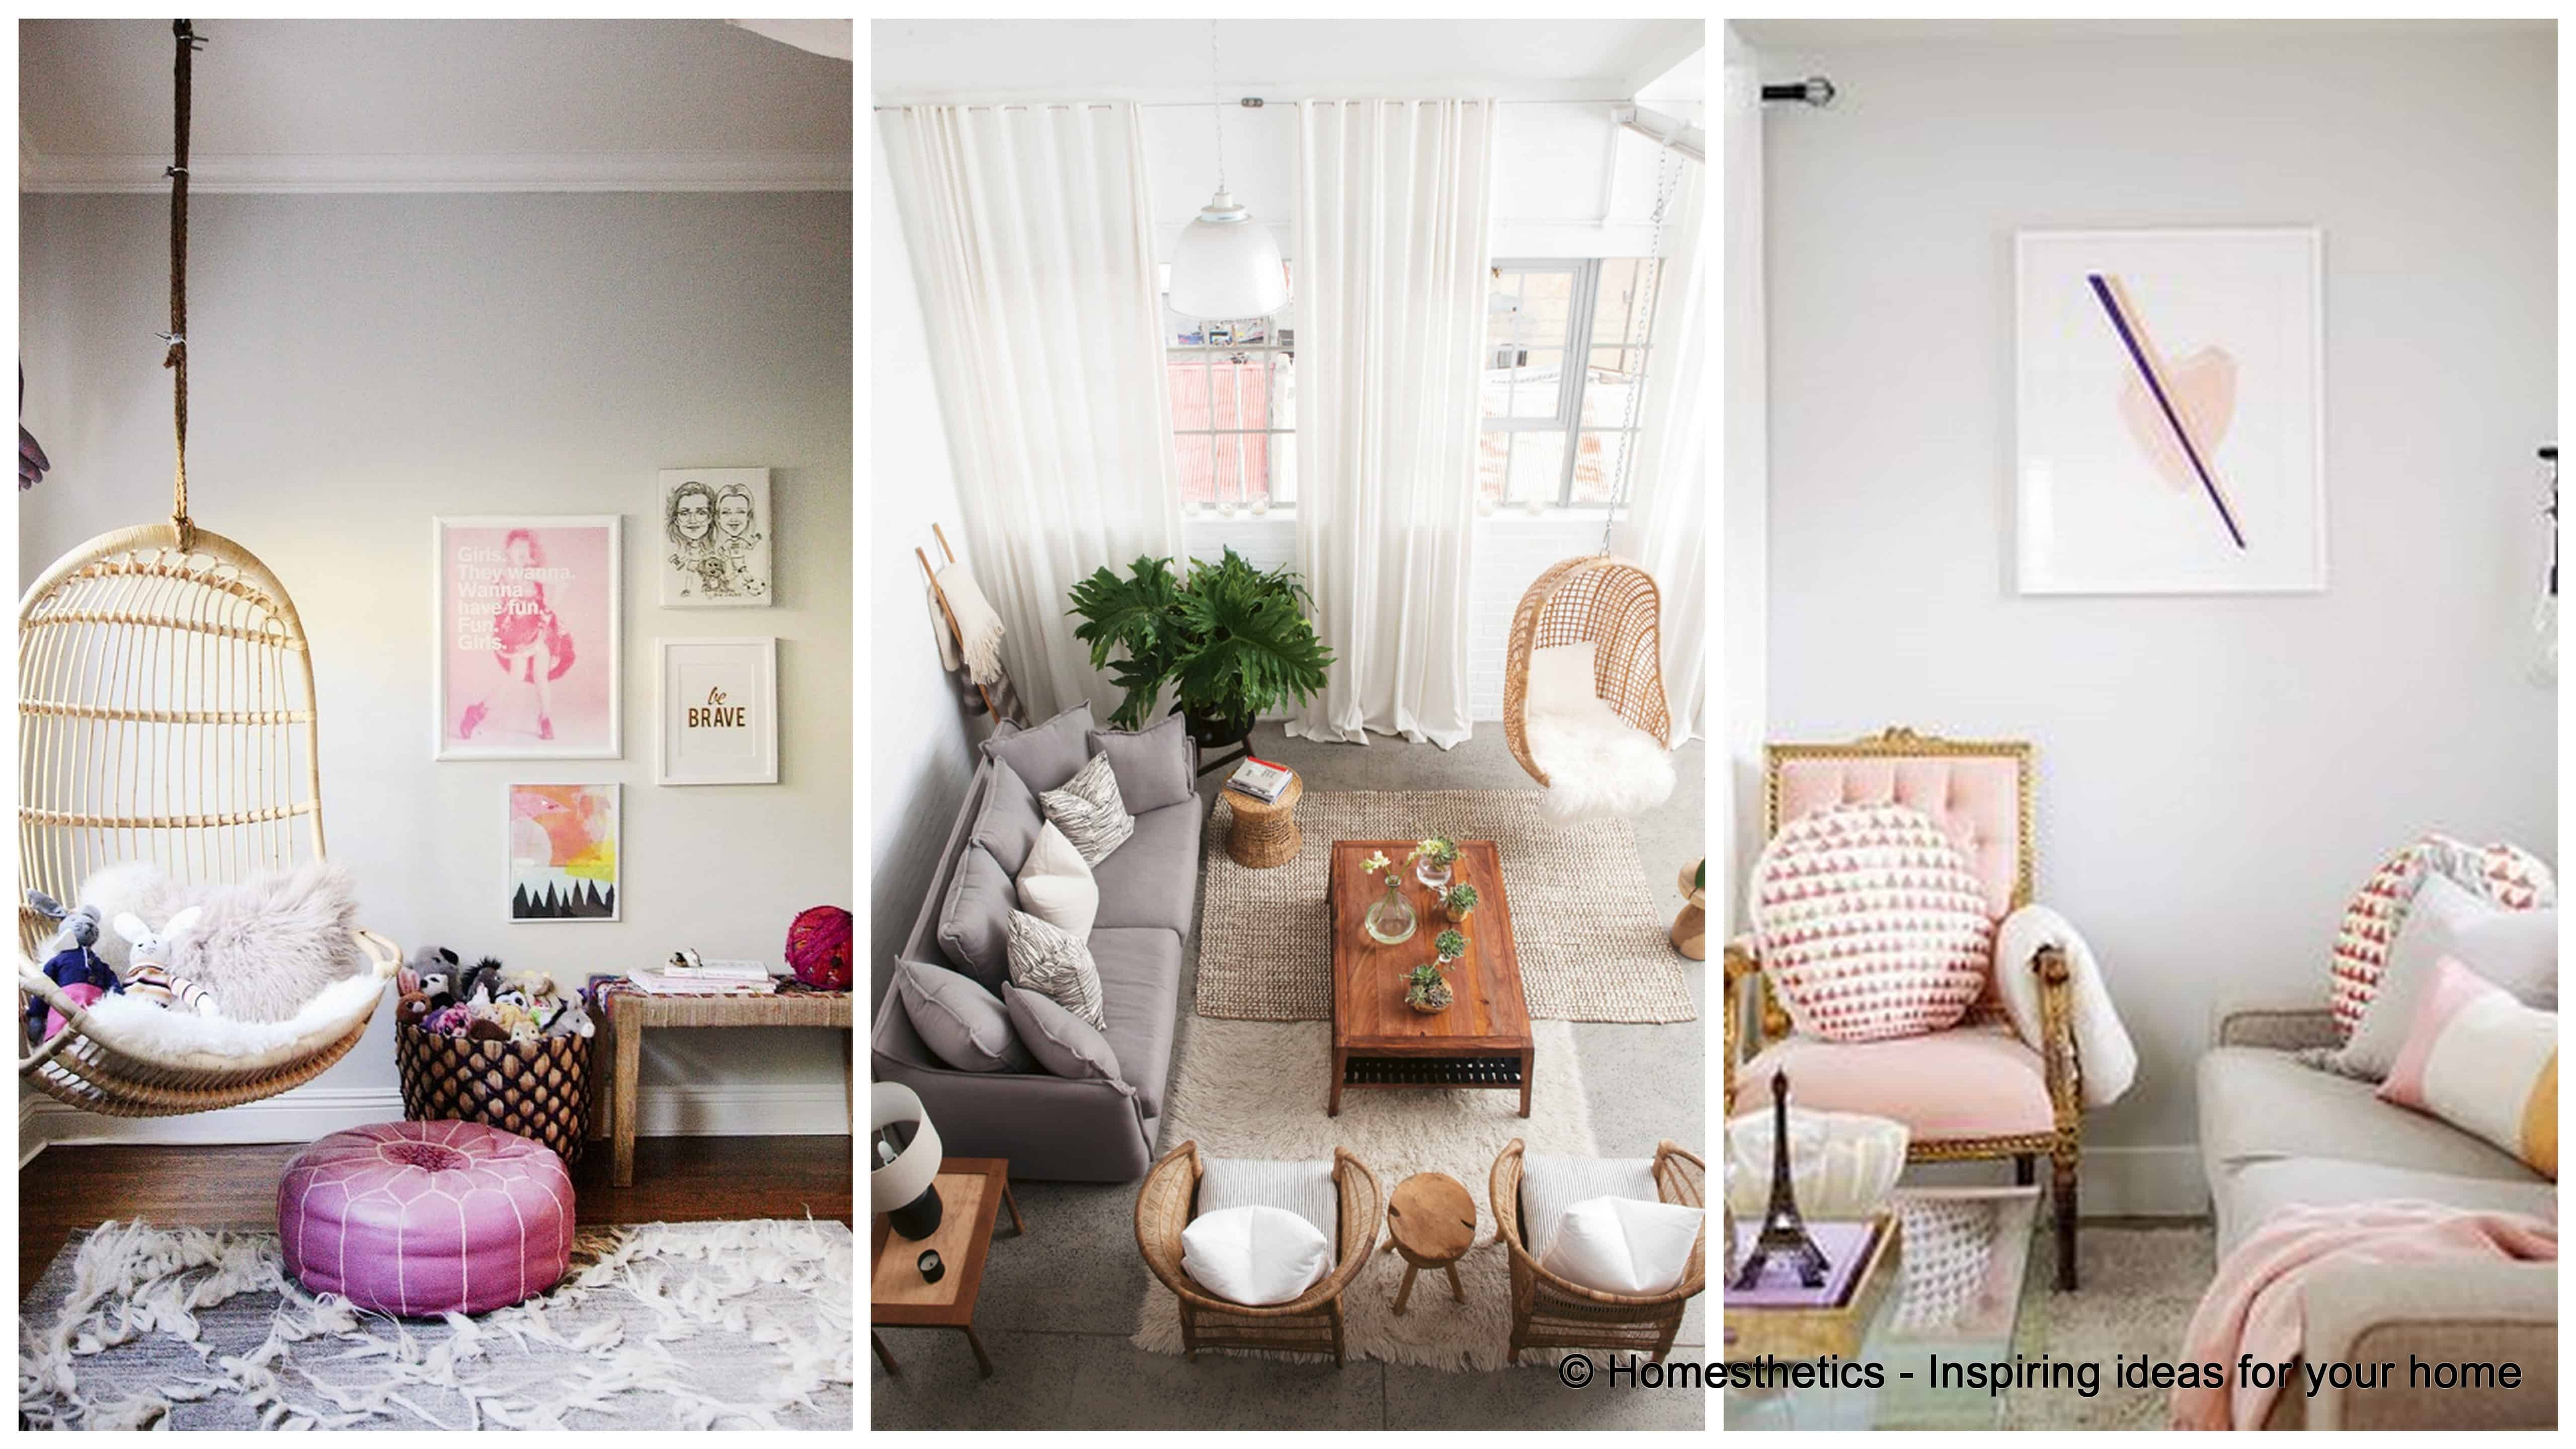 Living Room Ideasfor Small Spaces Fresh Small Living Room Ideas for Entertaining Your social Circle